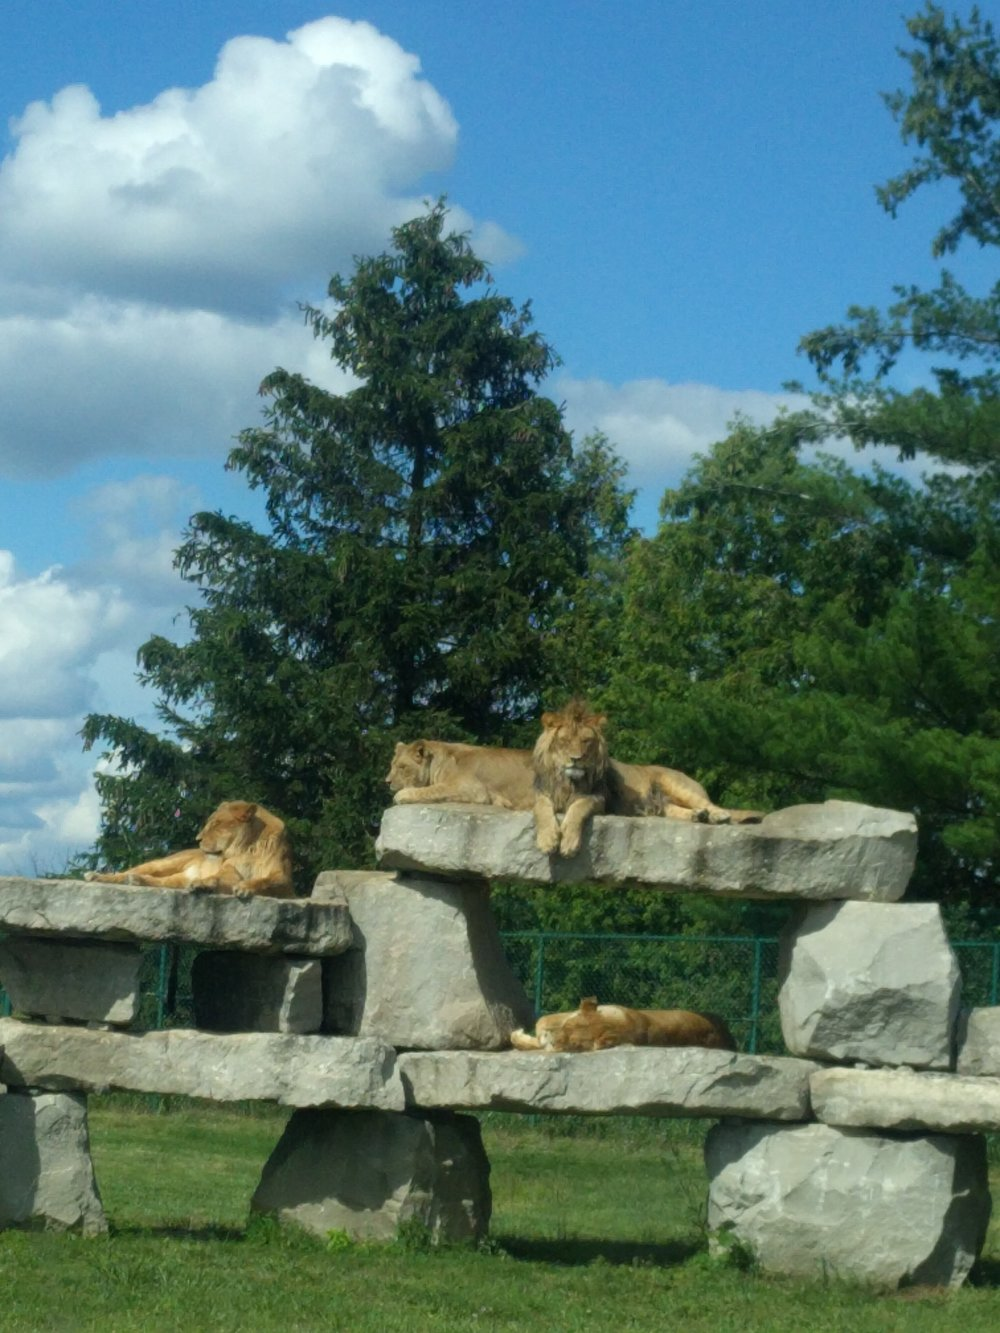 a lion pride we got to see on Safari in Canada